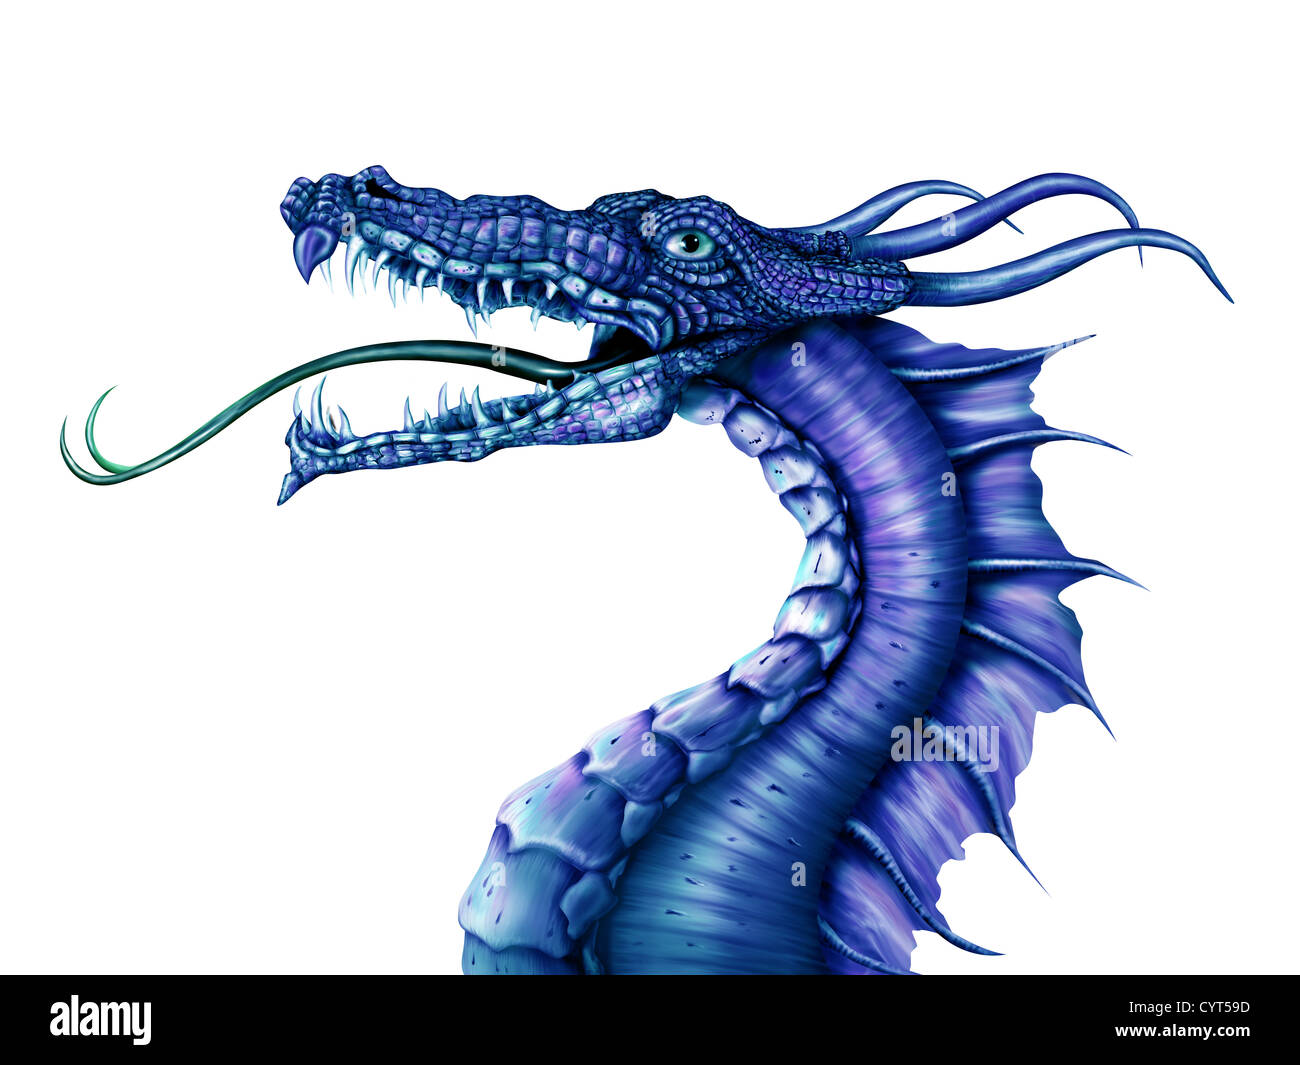 Illustration of a fierce blue dragon on a white background - Stock Image